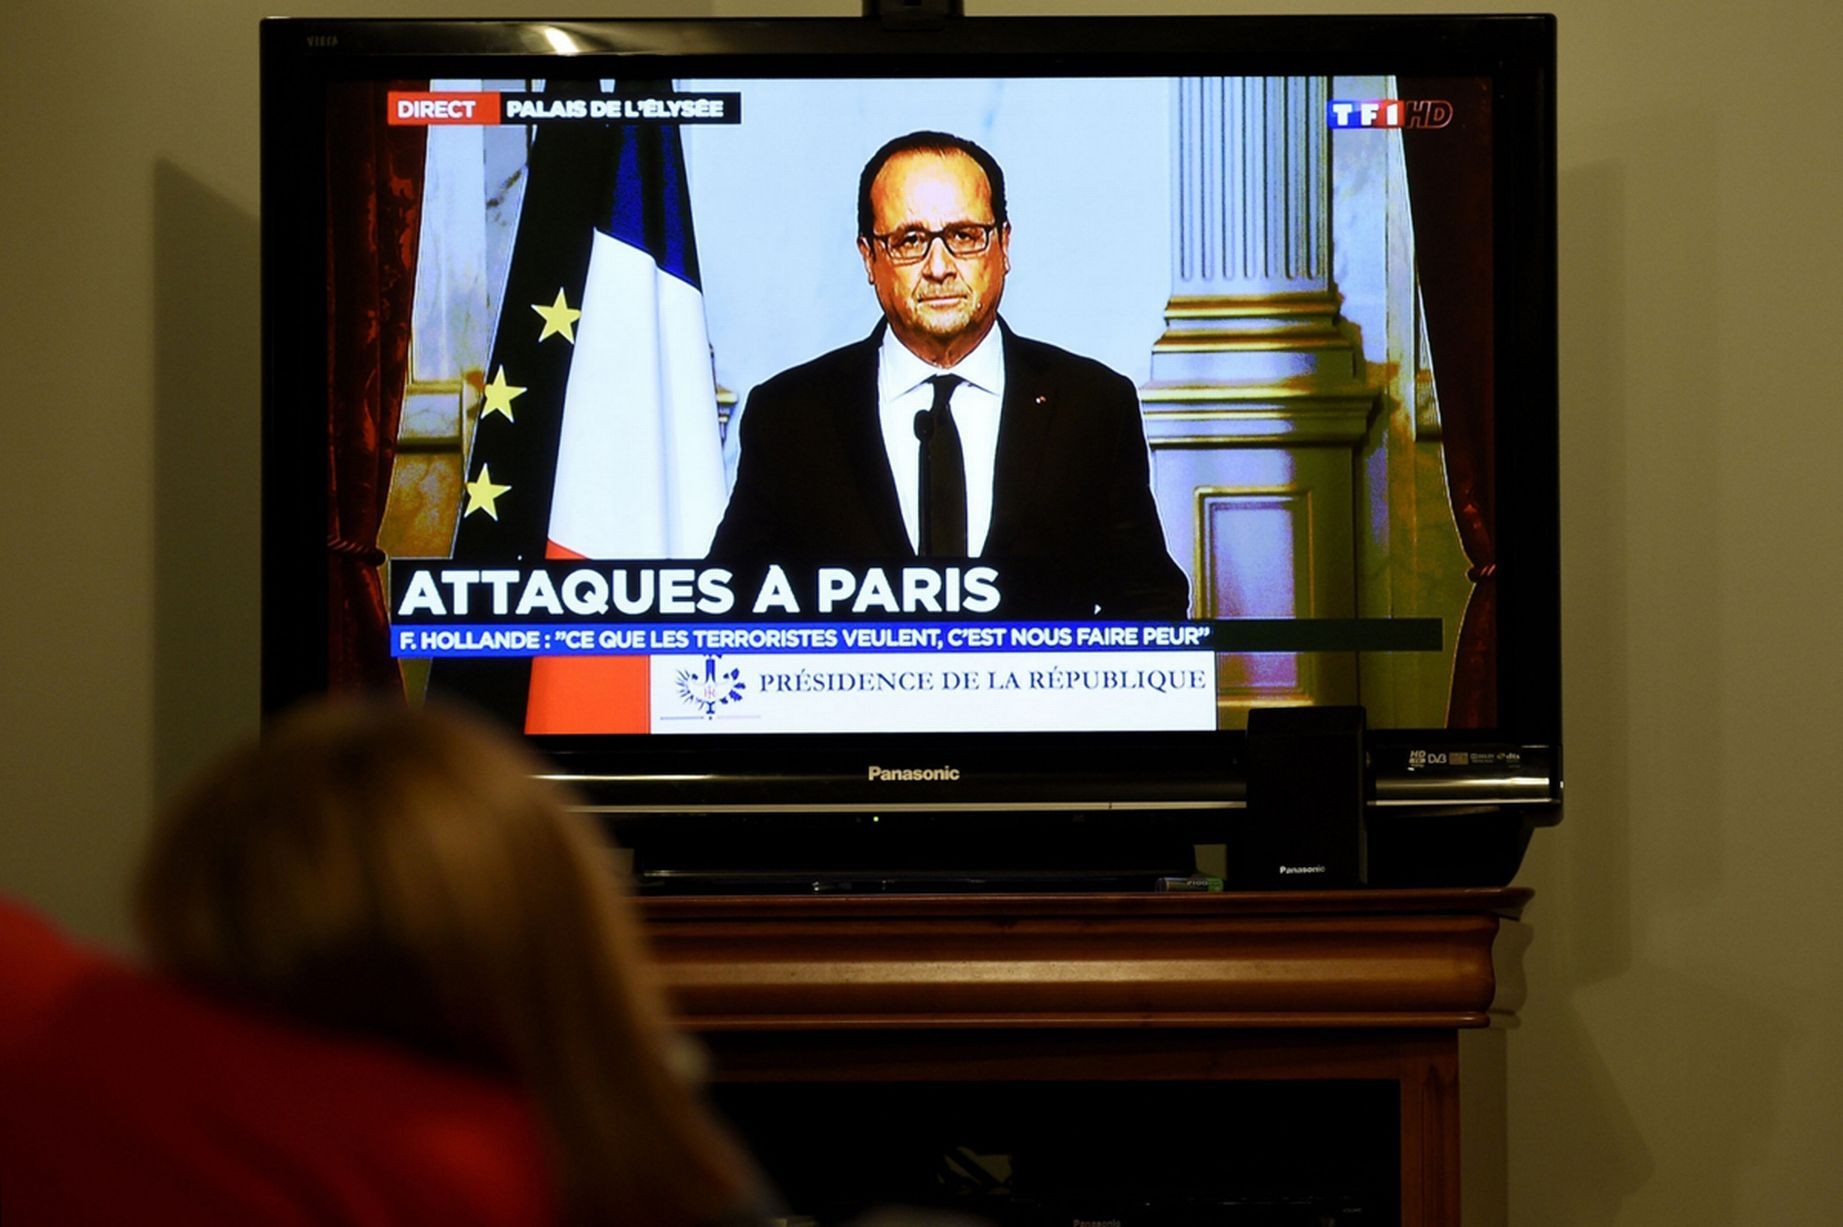 French President Francois Hollande after 11-13-15 attack